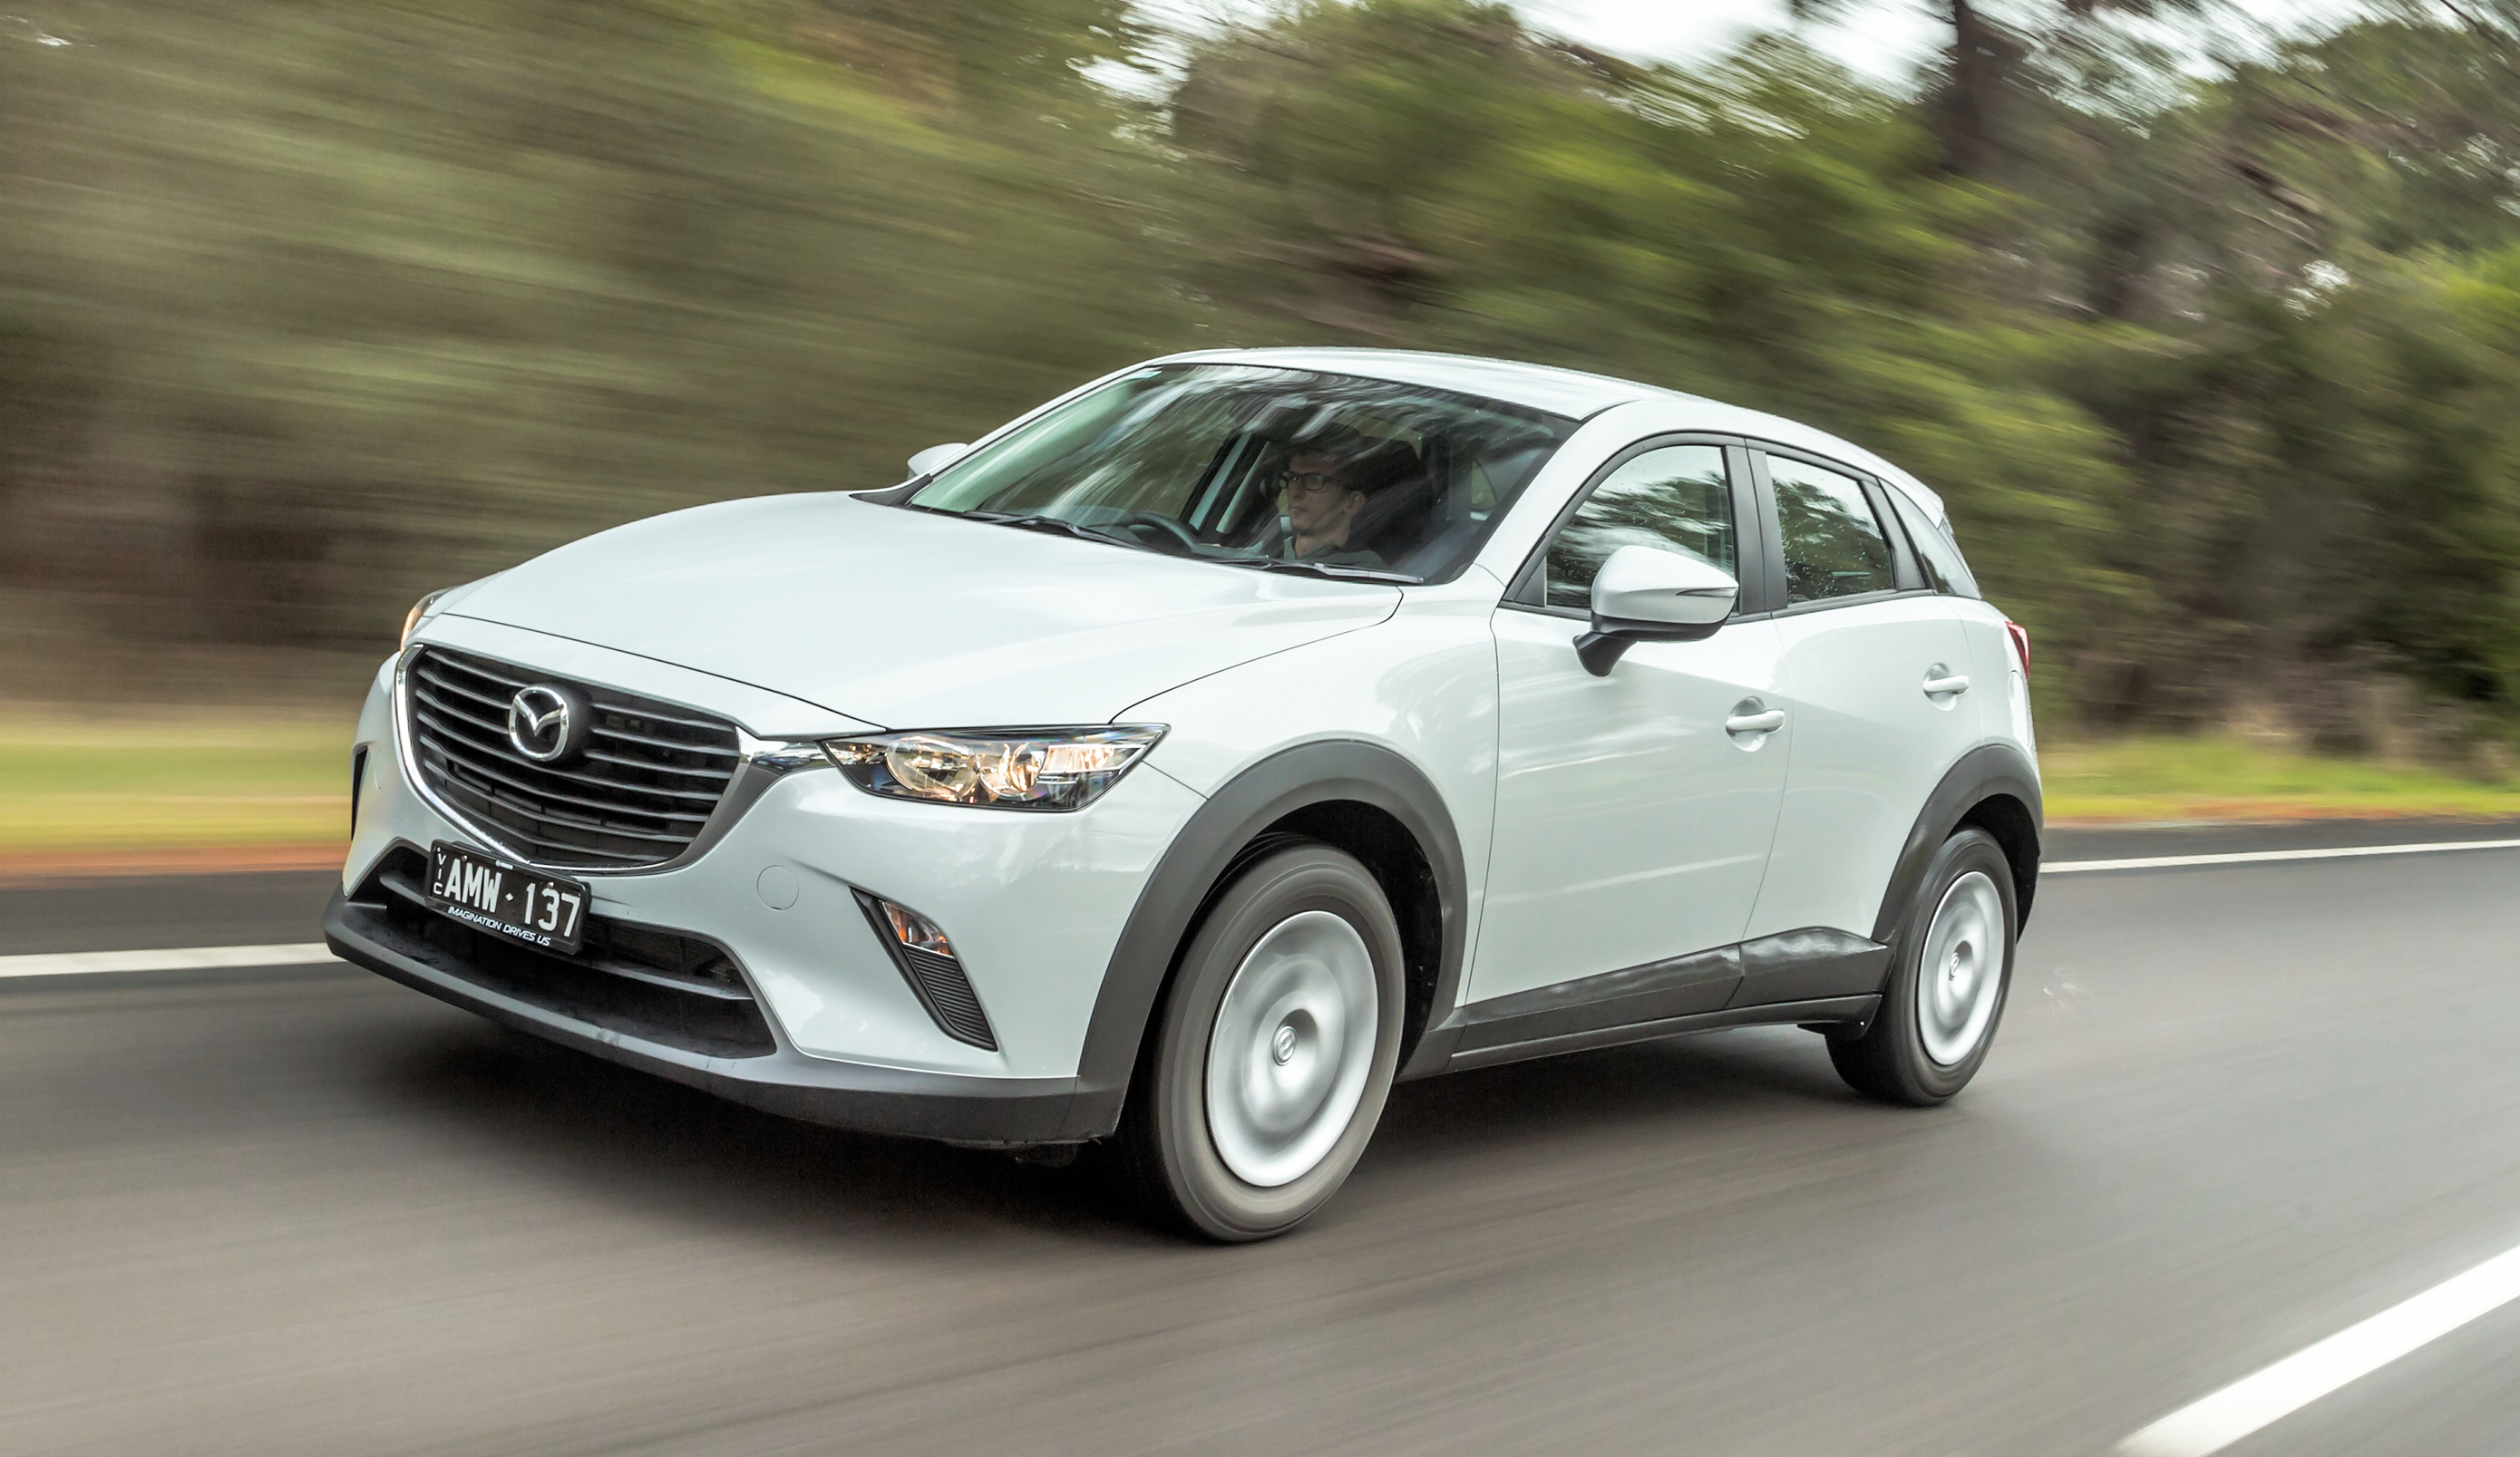 2017 Mazda Cx 3 Pricing And Specs Photos Caradvice